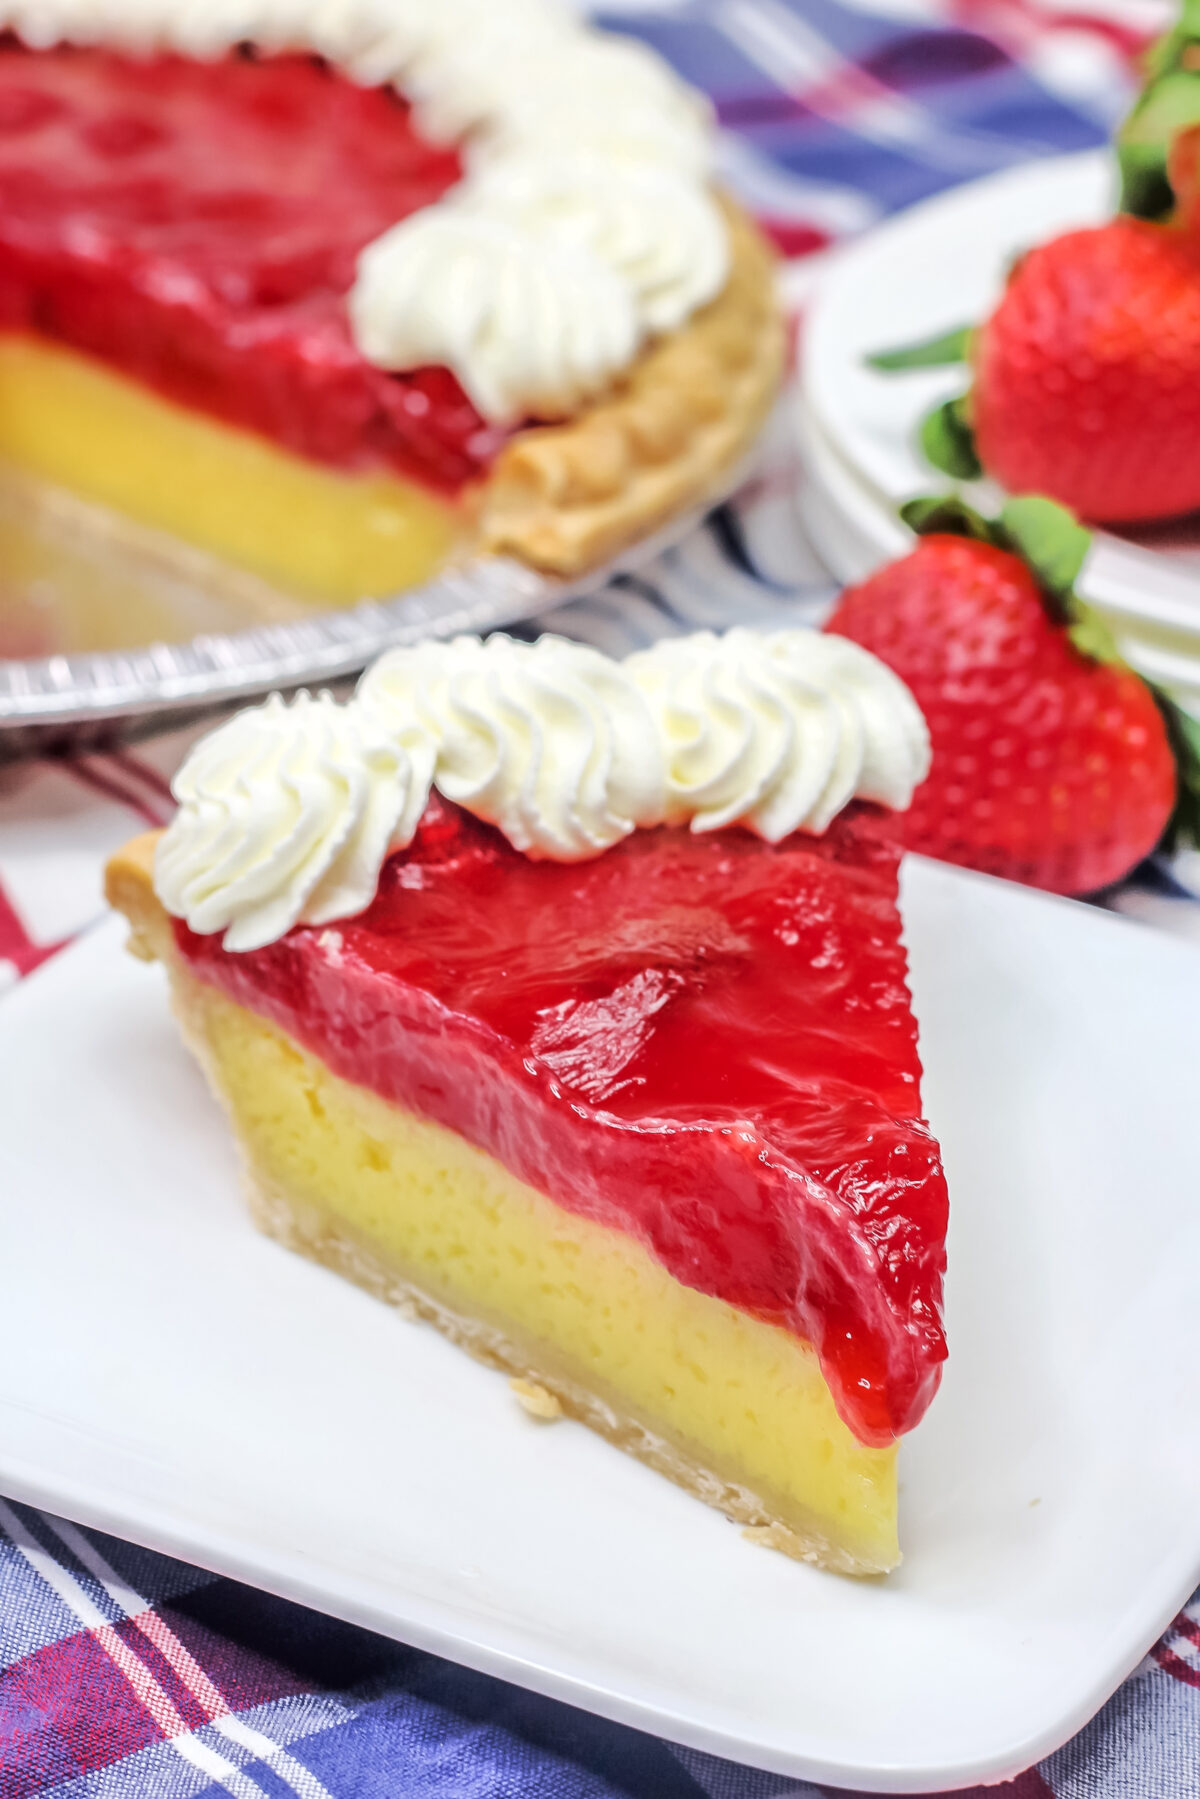 Smooth, custardy, tangy and sweet, this Strawberry Lemon Chess Pie is made with the classic recipe then topped with strawberry pie filling!